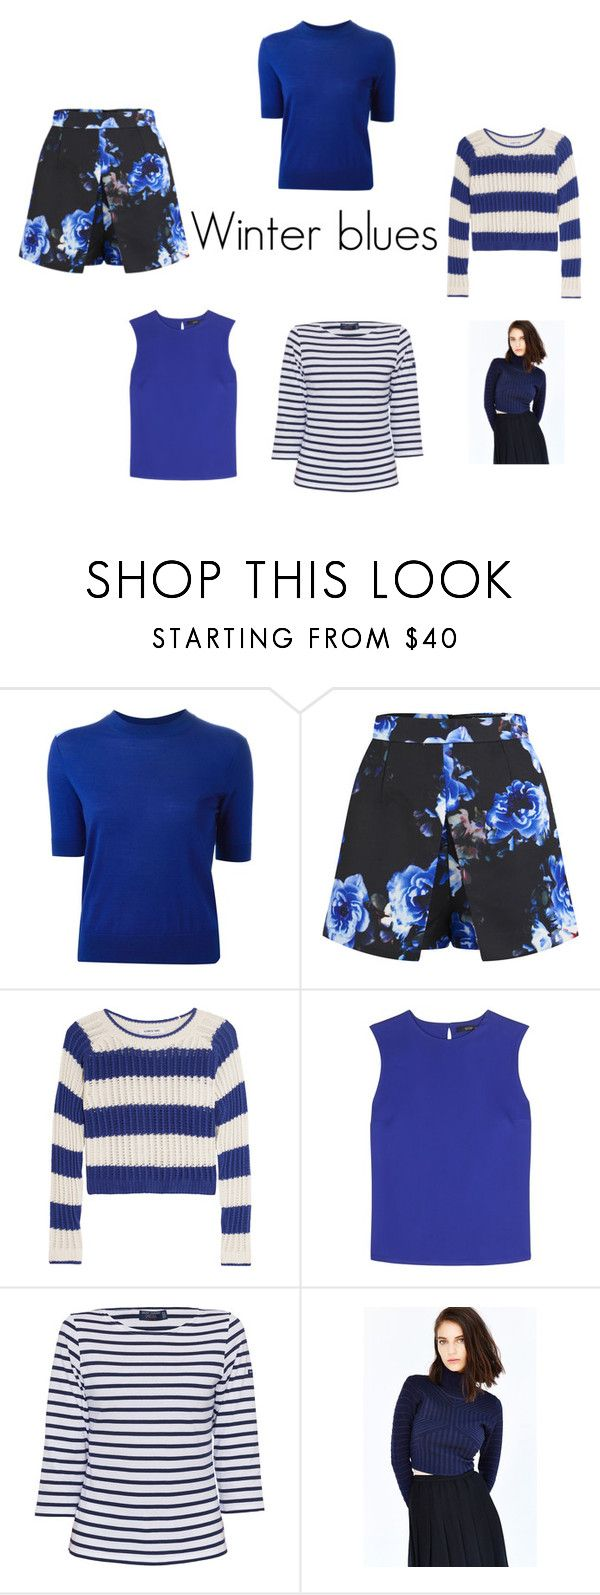 """""""Winter blues"""" by fargeporten ❤ liked on Polyvore featuring Marc by Marc Jacobs, Girls On Film, Elizabeth and James, Etro, Saint James and Glamorous"""